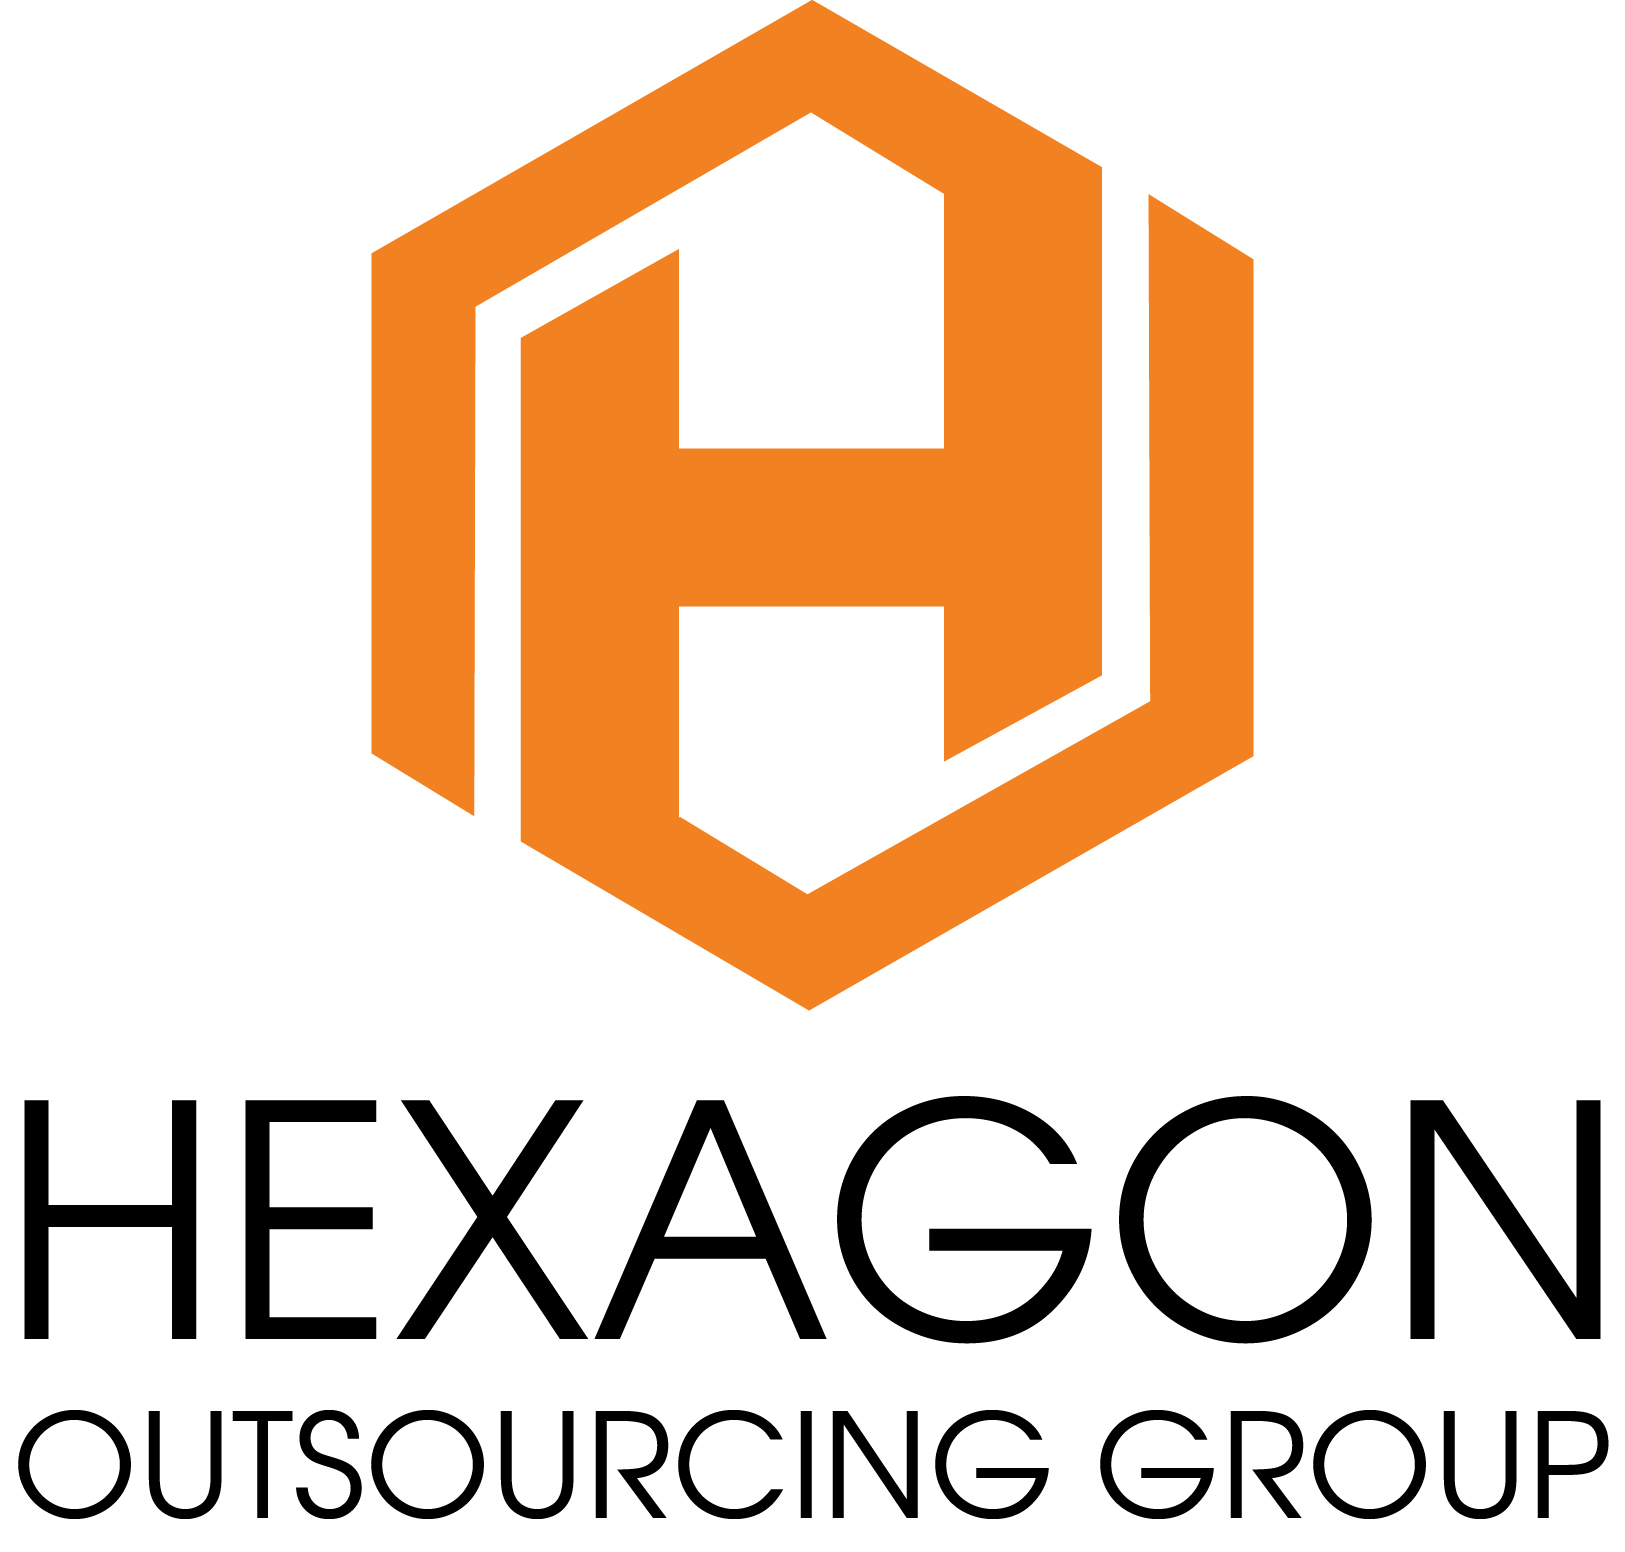 Hexagon Outsourcing Group